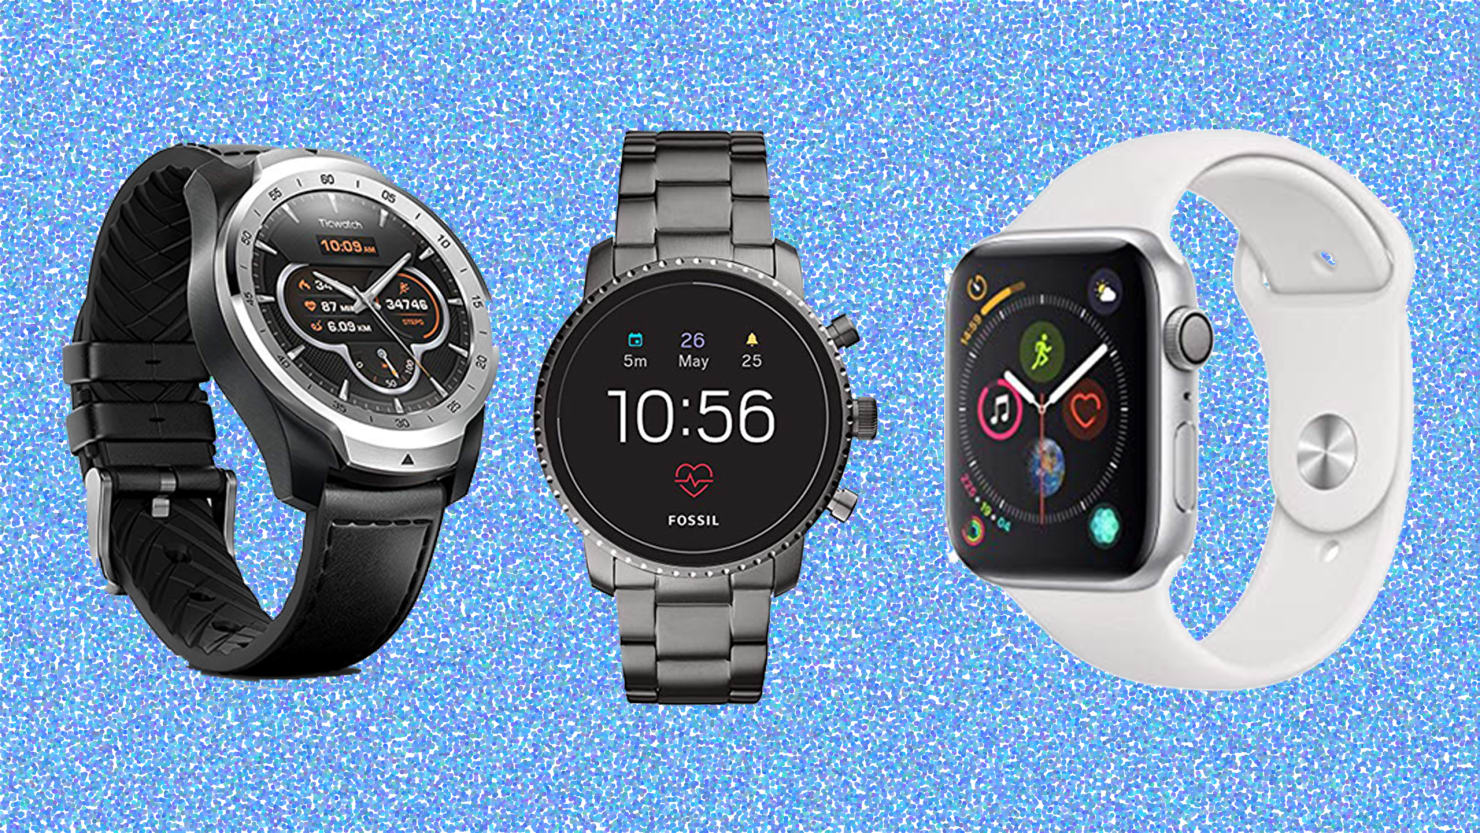 Scouted: The Smartwatch For Every Apple, Samsung, and Google Phone User